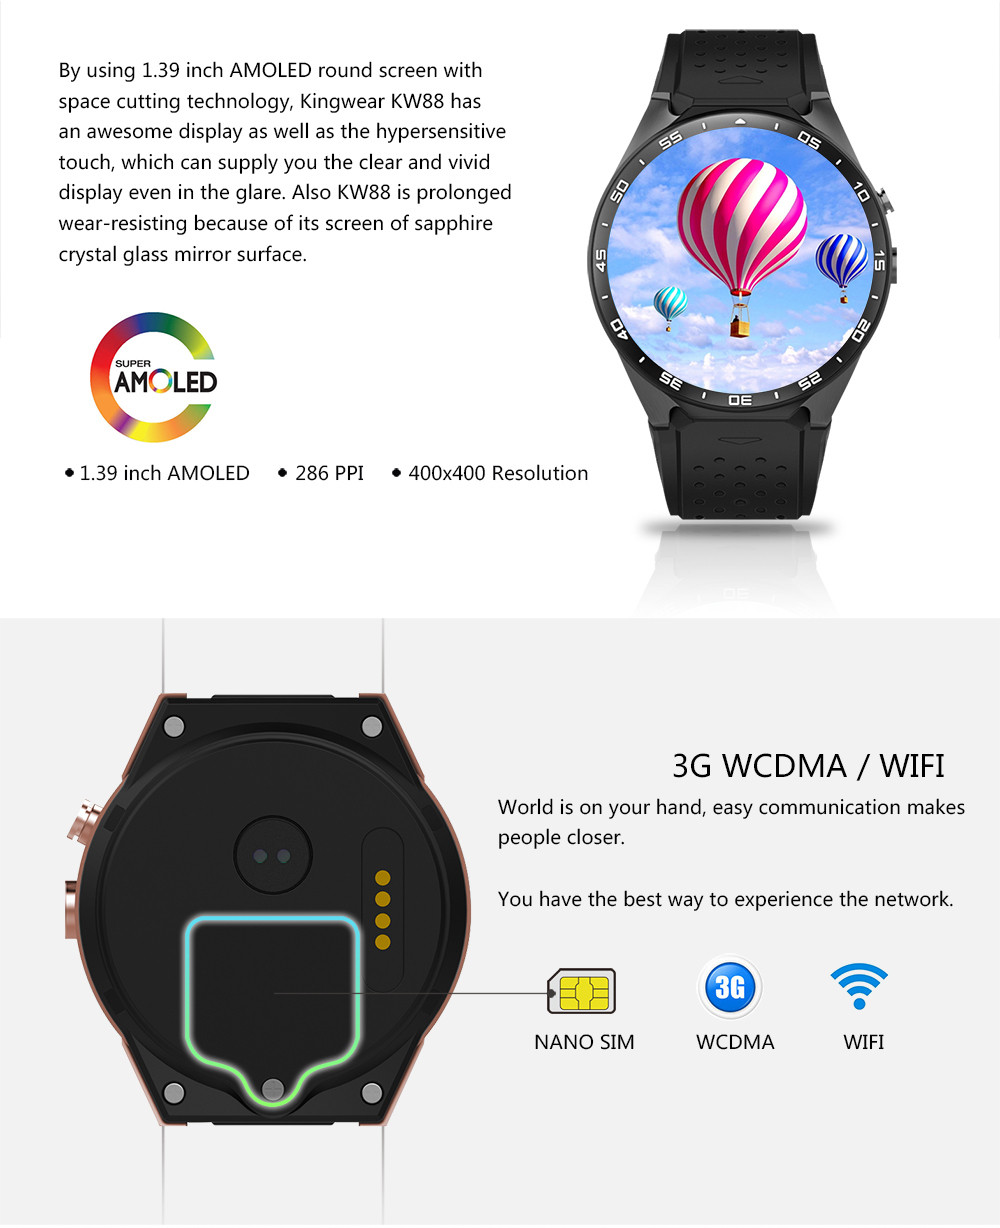 kw88 Android 5.1 Smart Watch 512MB + 4GB Bluetooth 4.0 WIFI 3G Smartwatch Phone Wristwatch Support Google Voice GPS Map цена